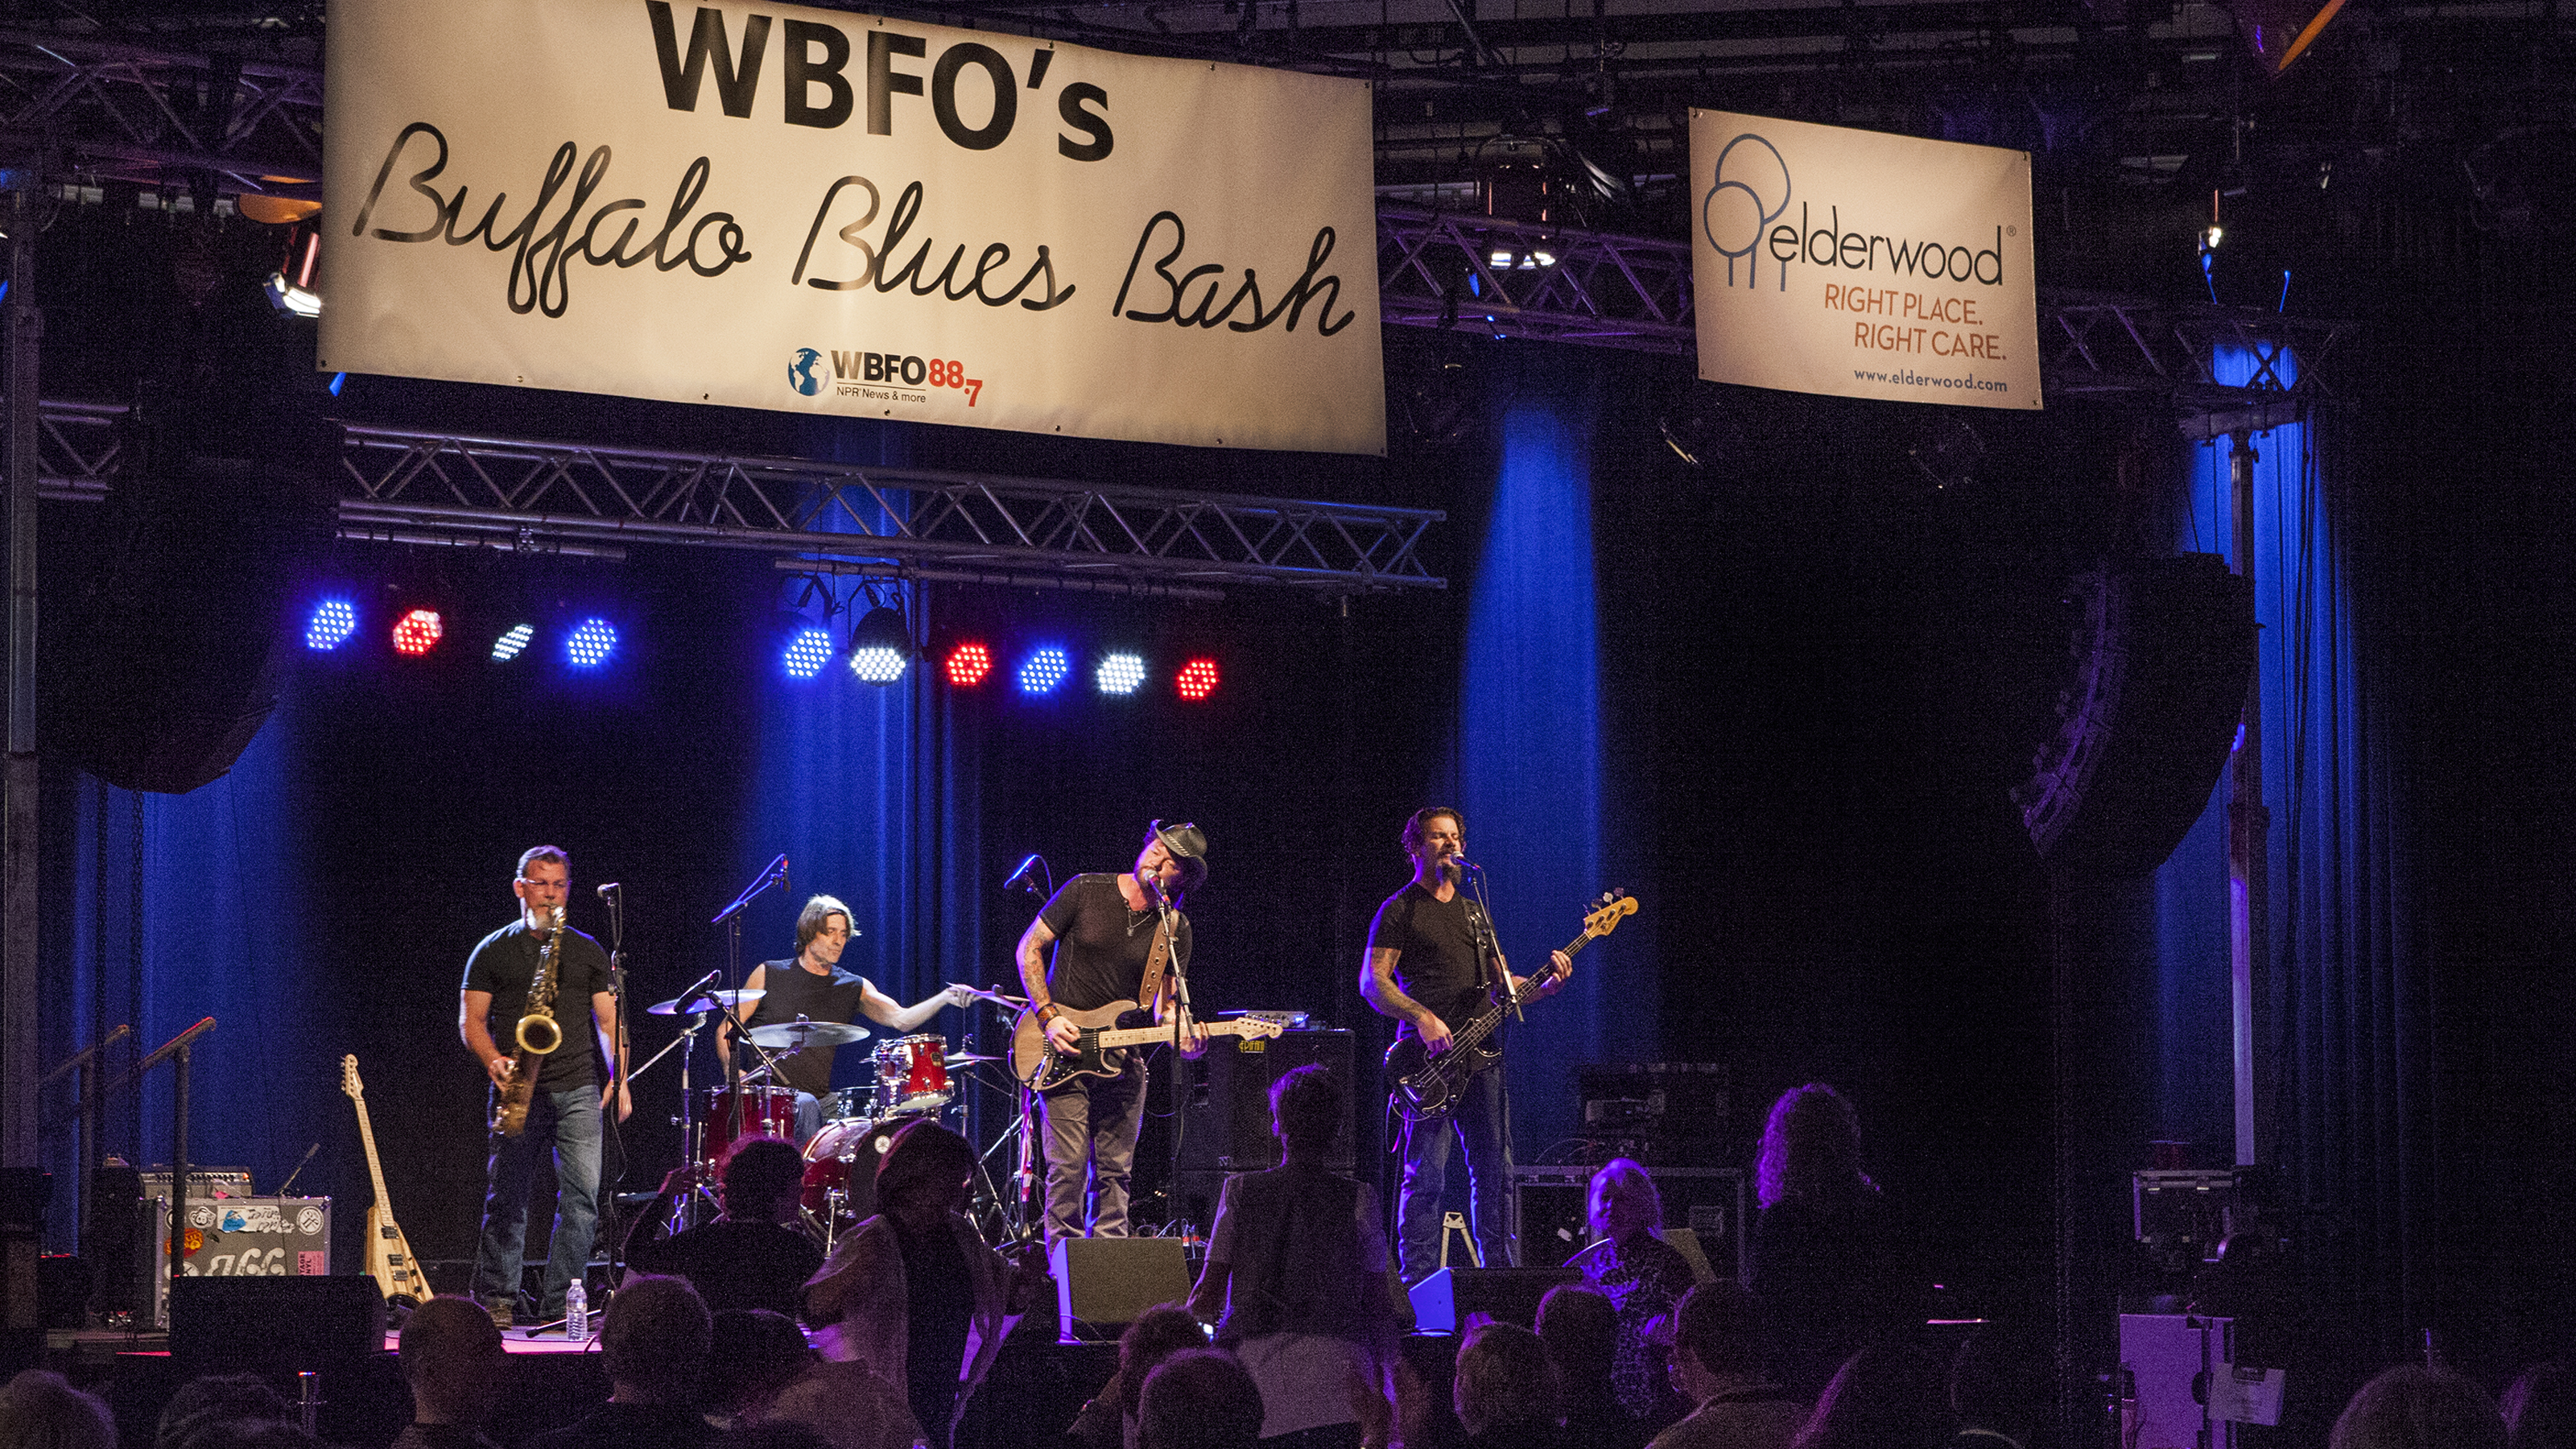 St. Louis' Jeremiah Johnson Band headlined WBFO's Buffalo Blues Bash in October 2016